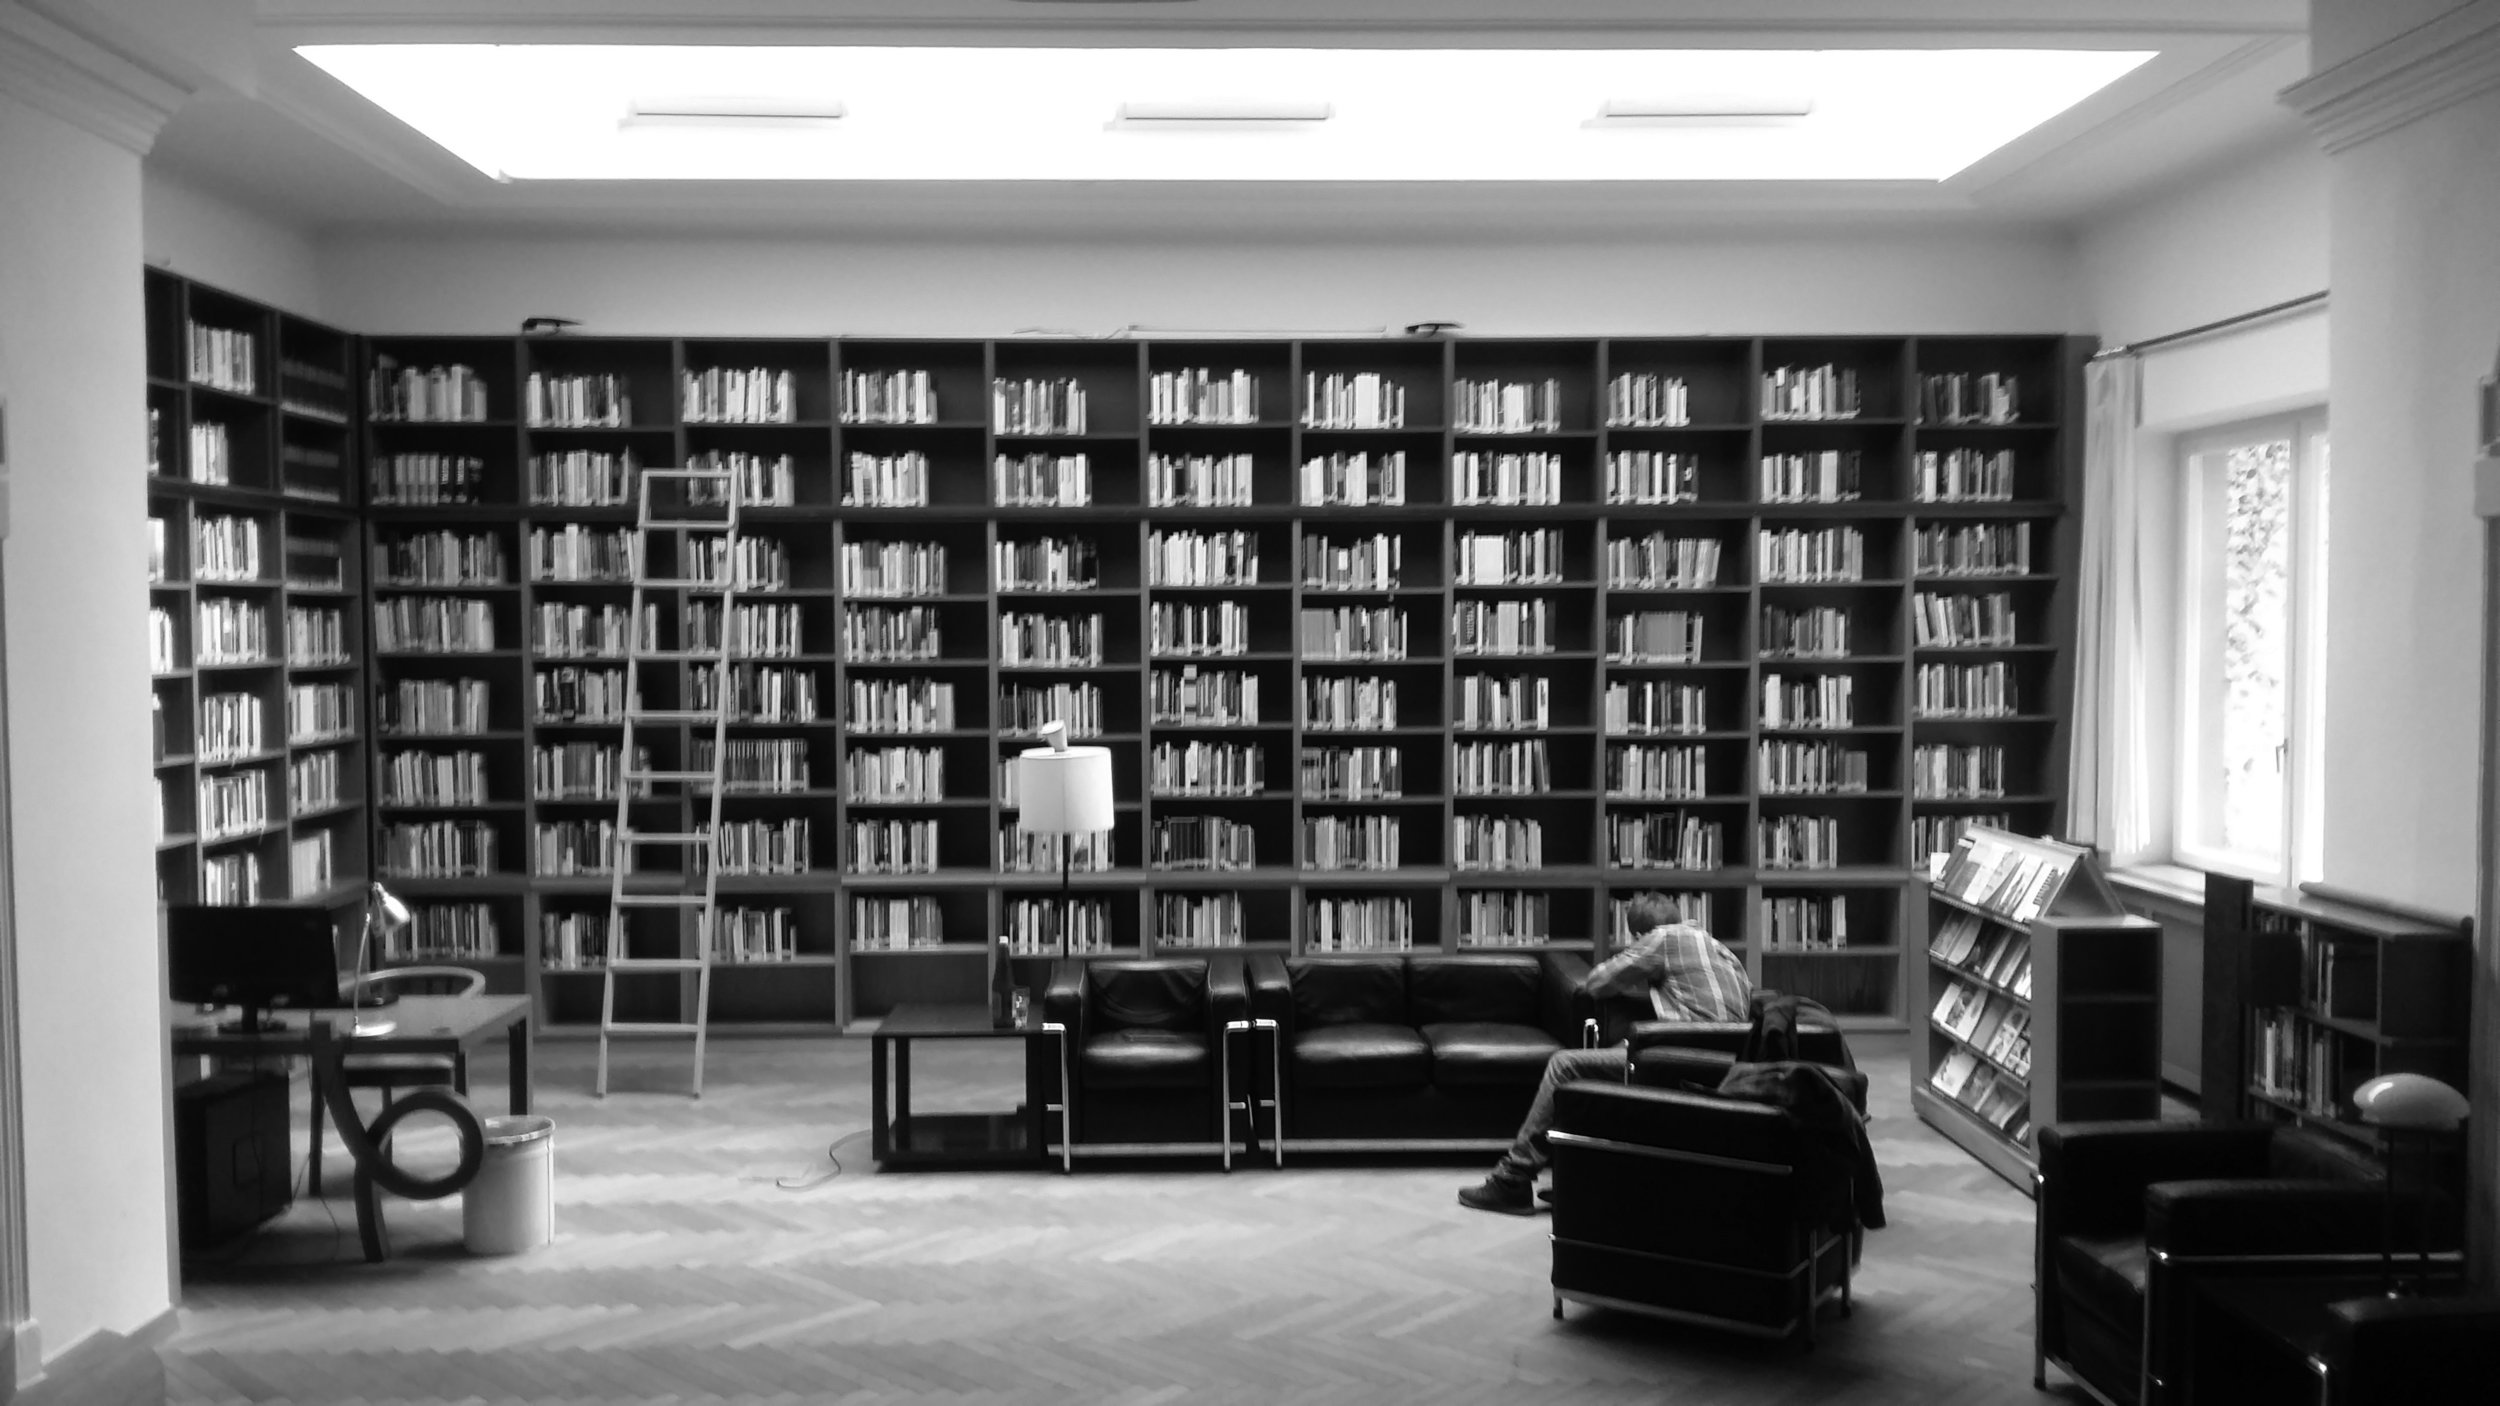 The library of  The Institute for Human Sciences in Vienna, where the interview took place. Photograph: Michal Micovčin (c).